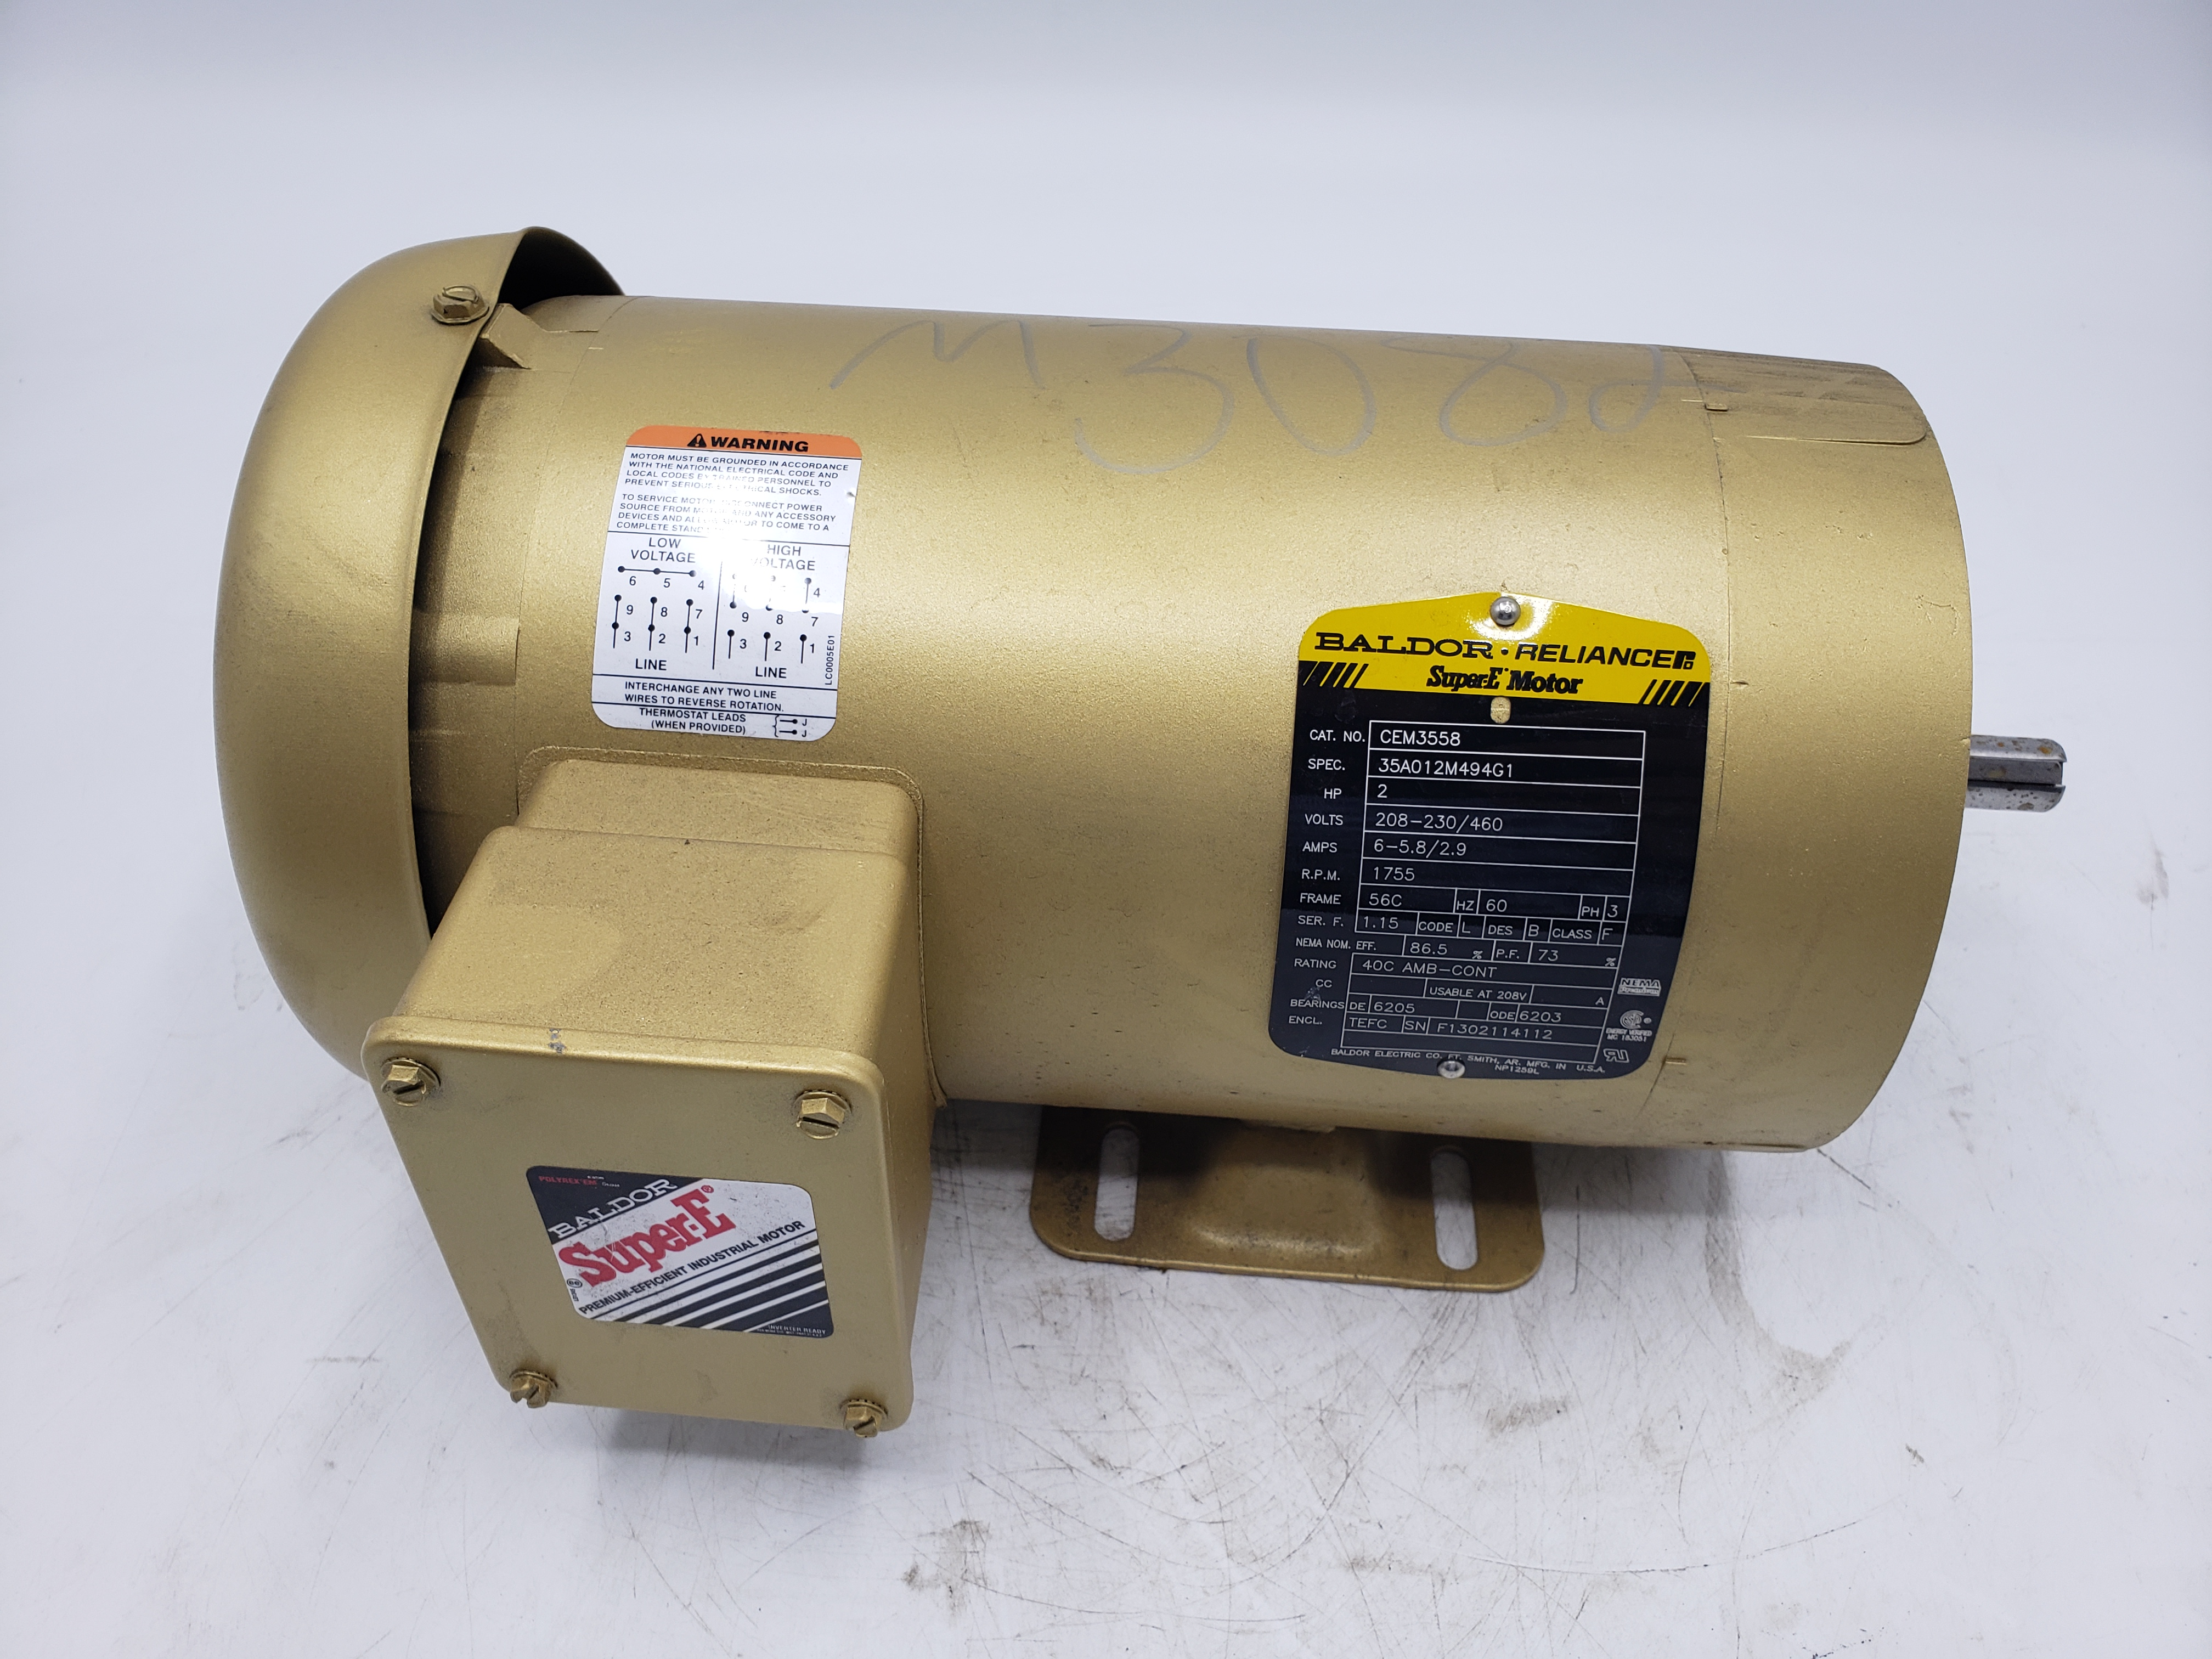 Baldor 2HP 208-230/460V 1755RPM Frame 56C Electric Motor